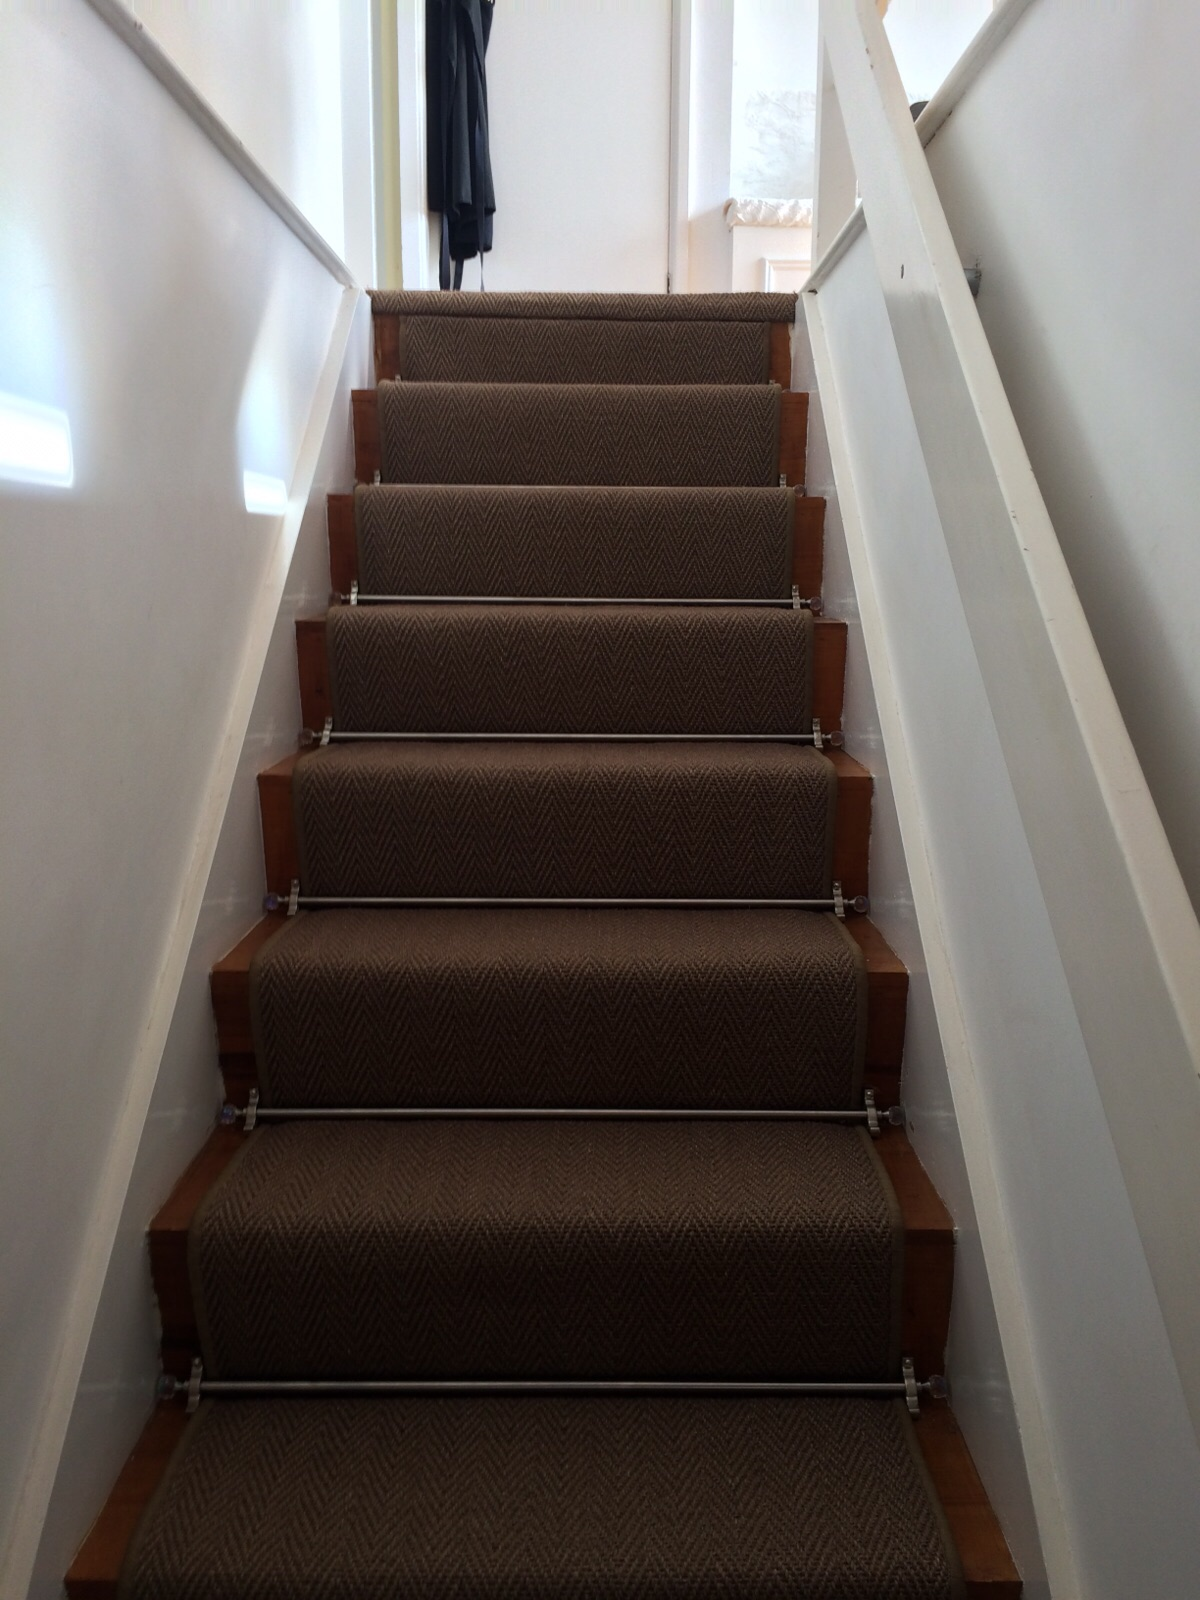 Alternative, Sisal Herringbone with Crystal Stair Rods (2).JPG